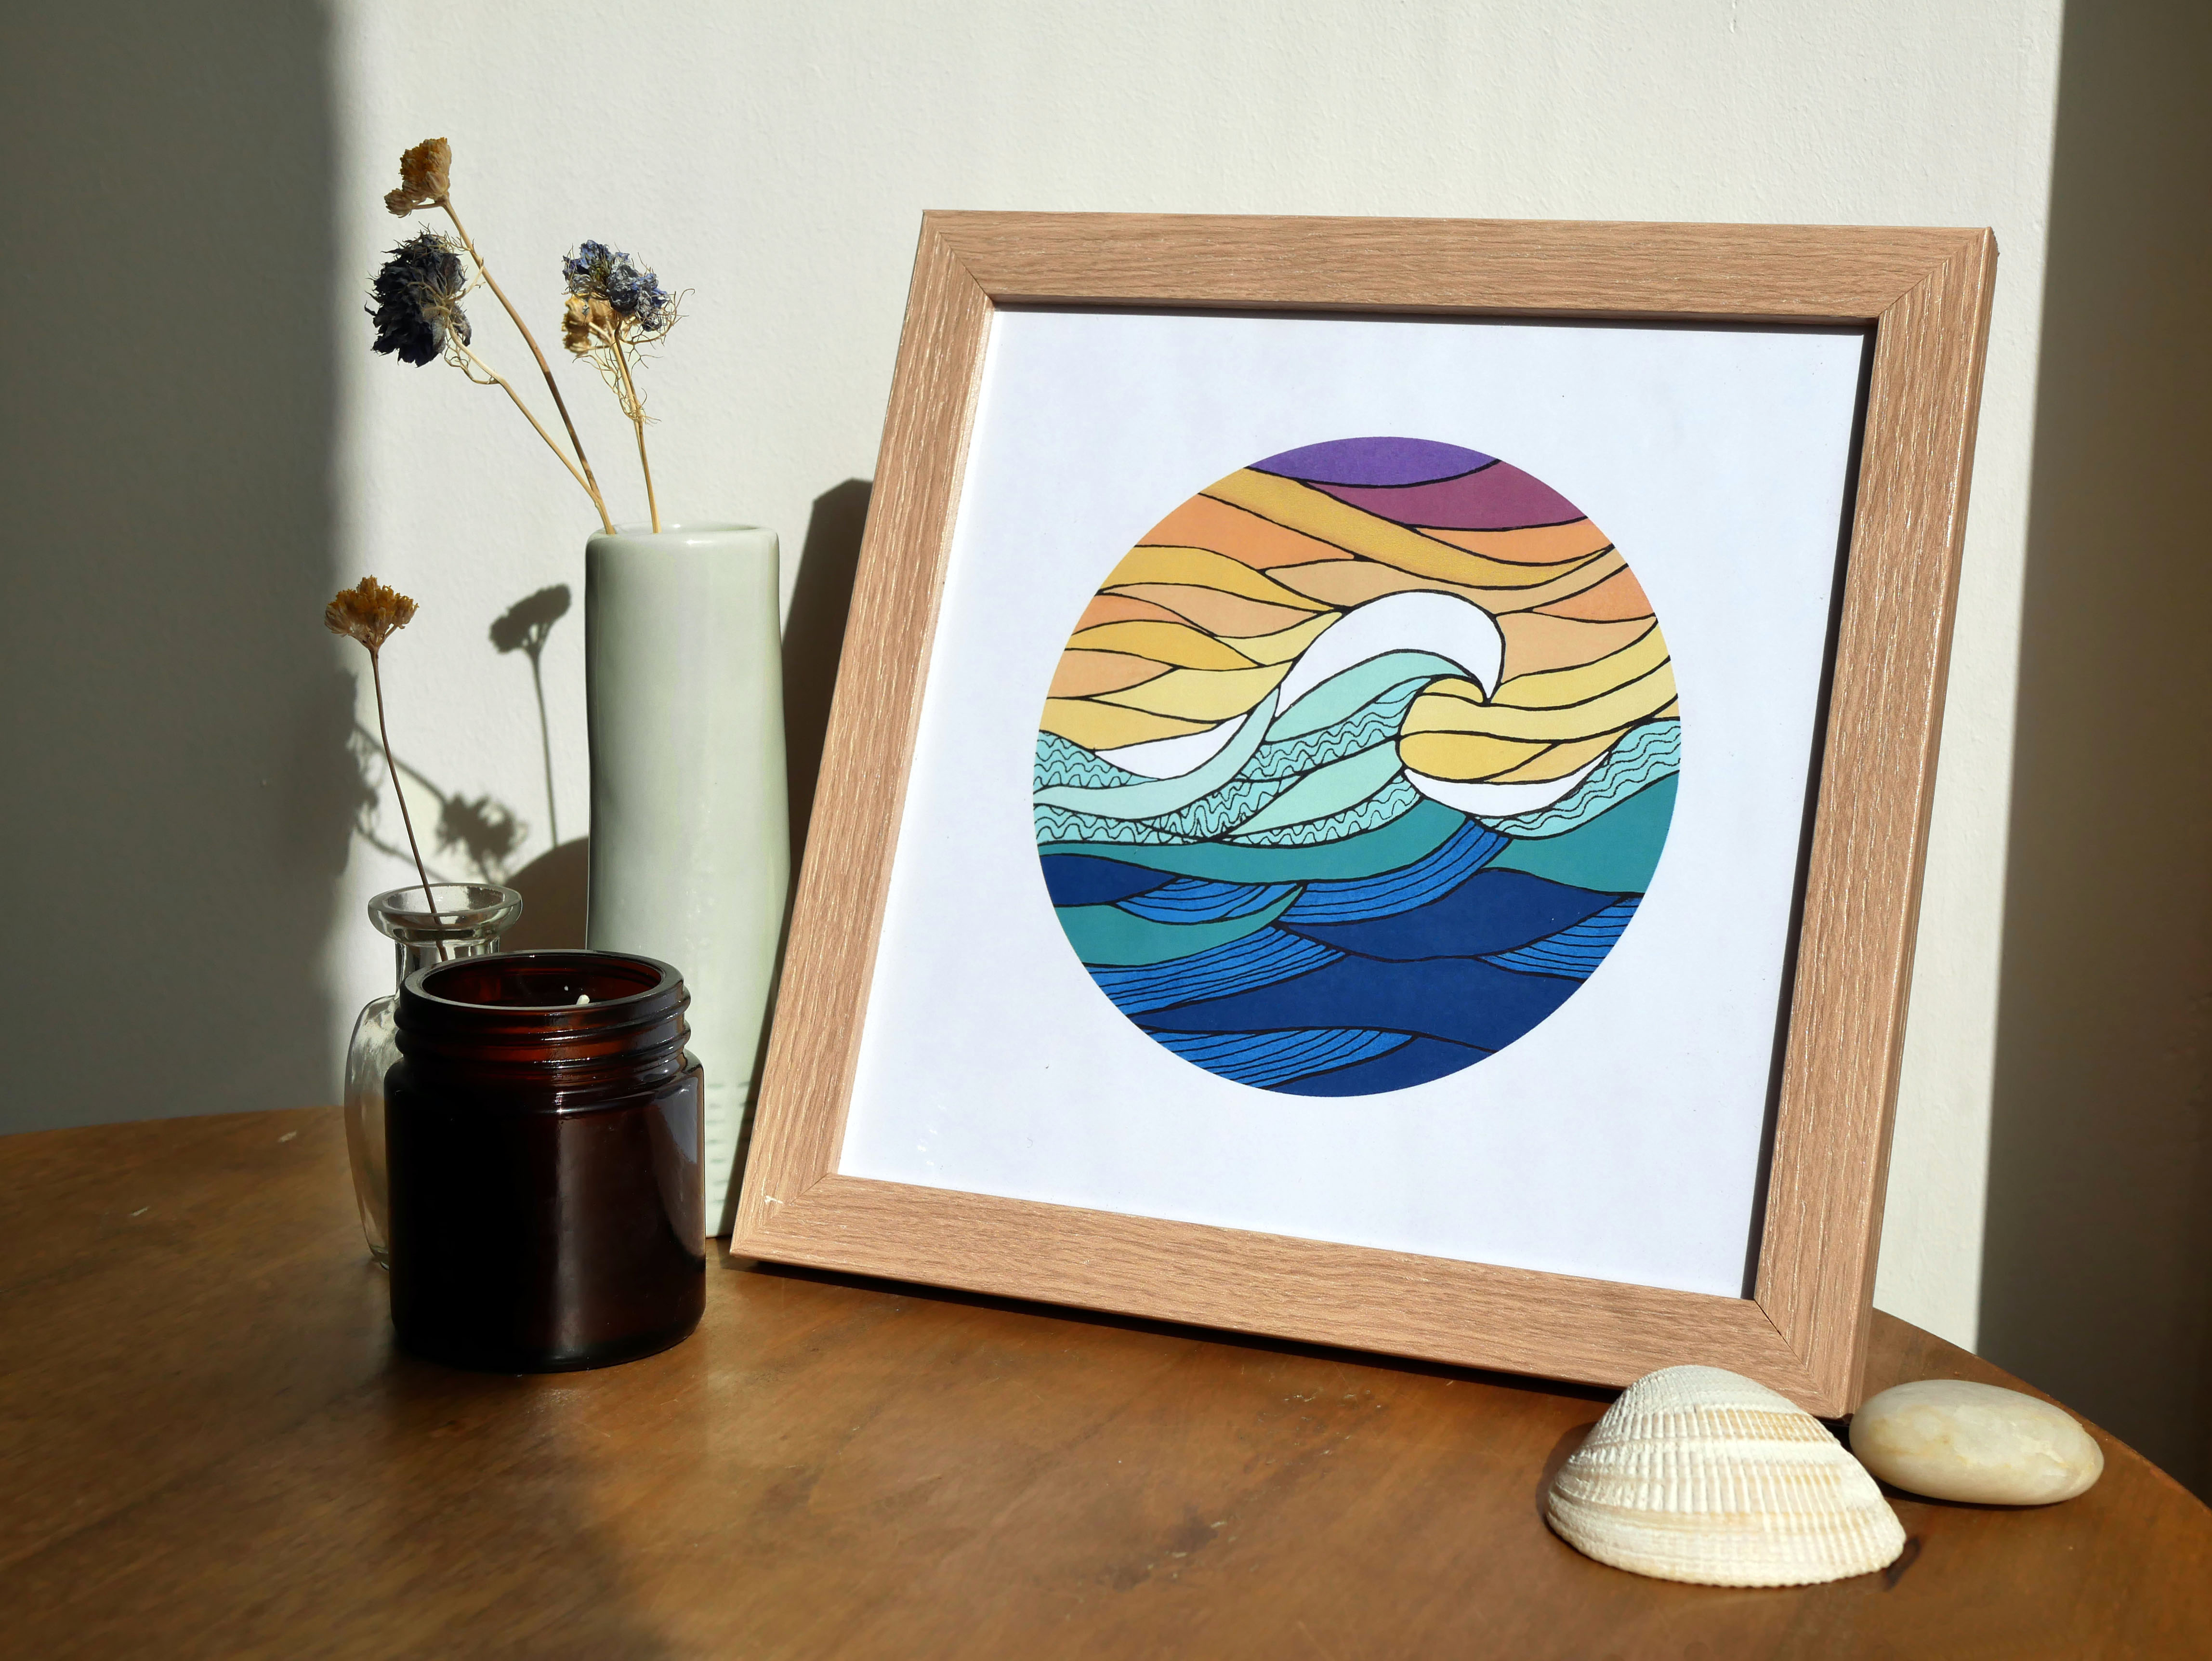 Colorful squared-size poster in a wooden frame